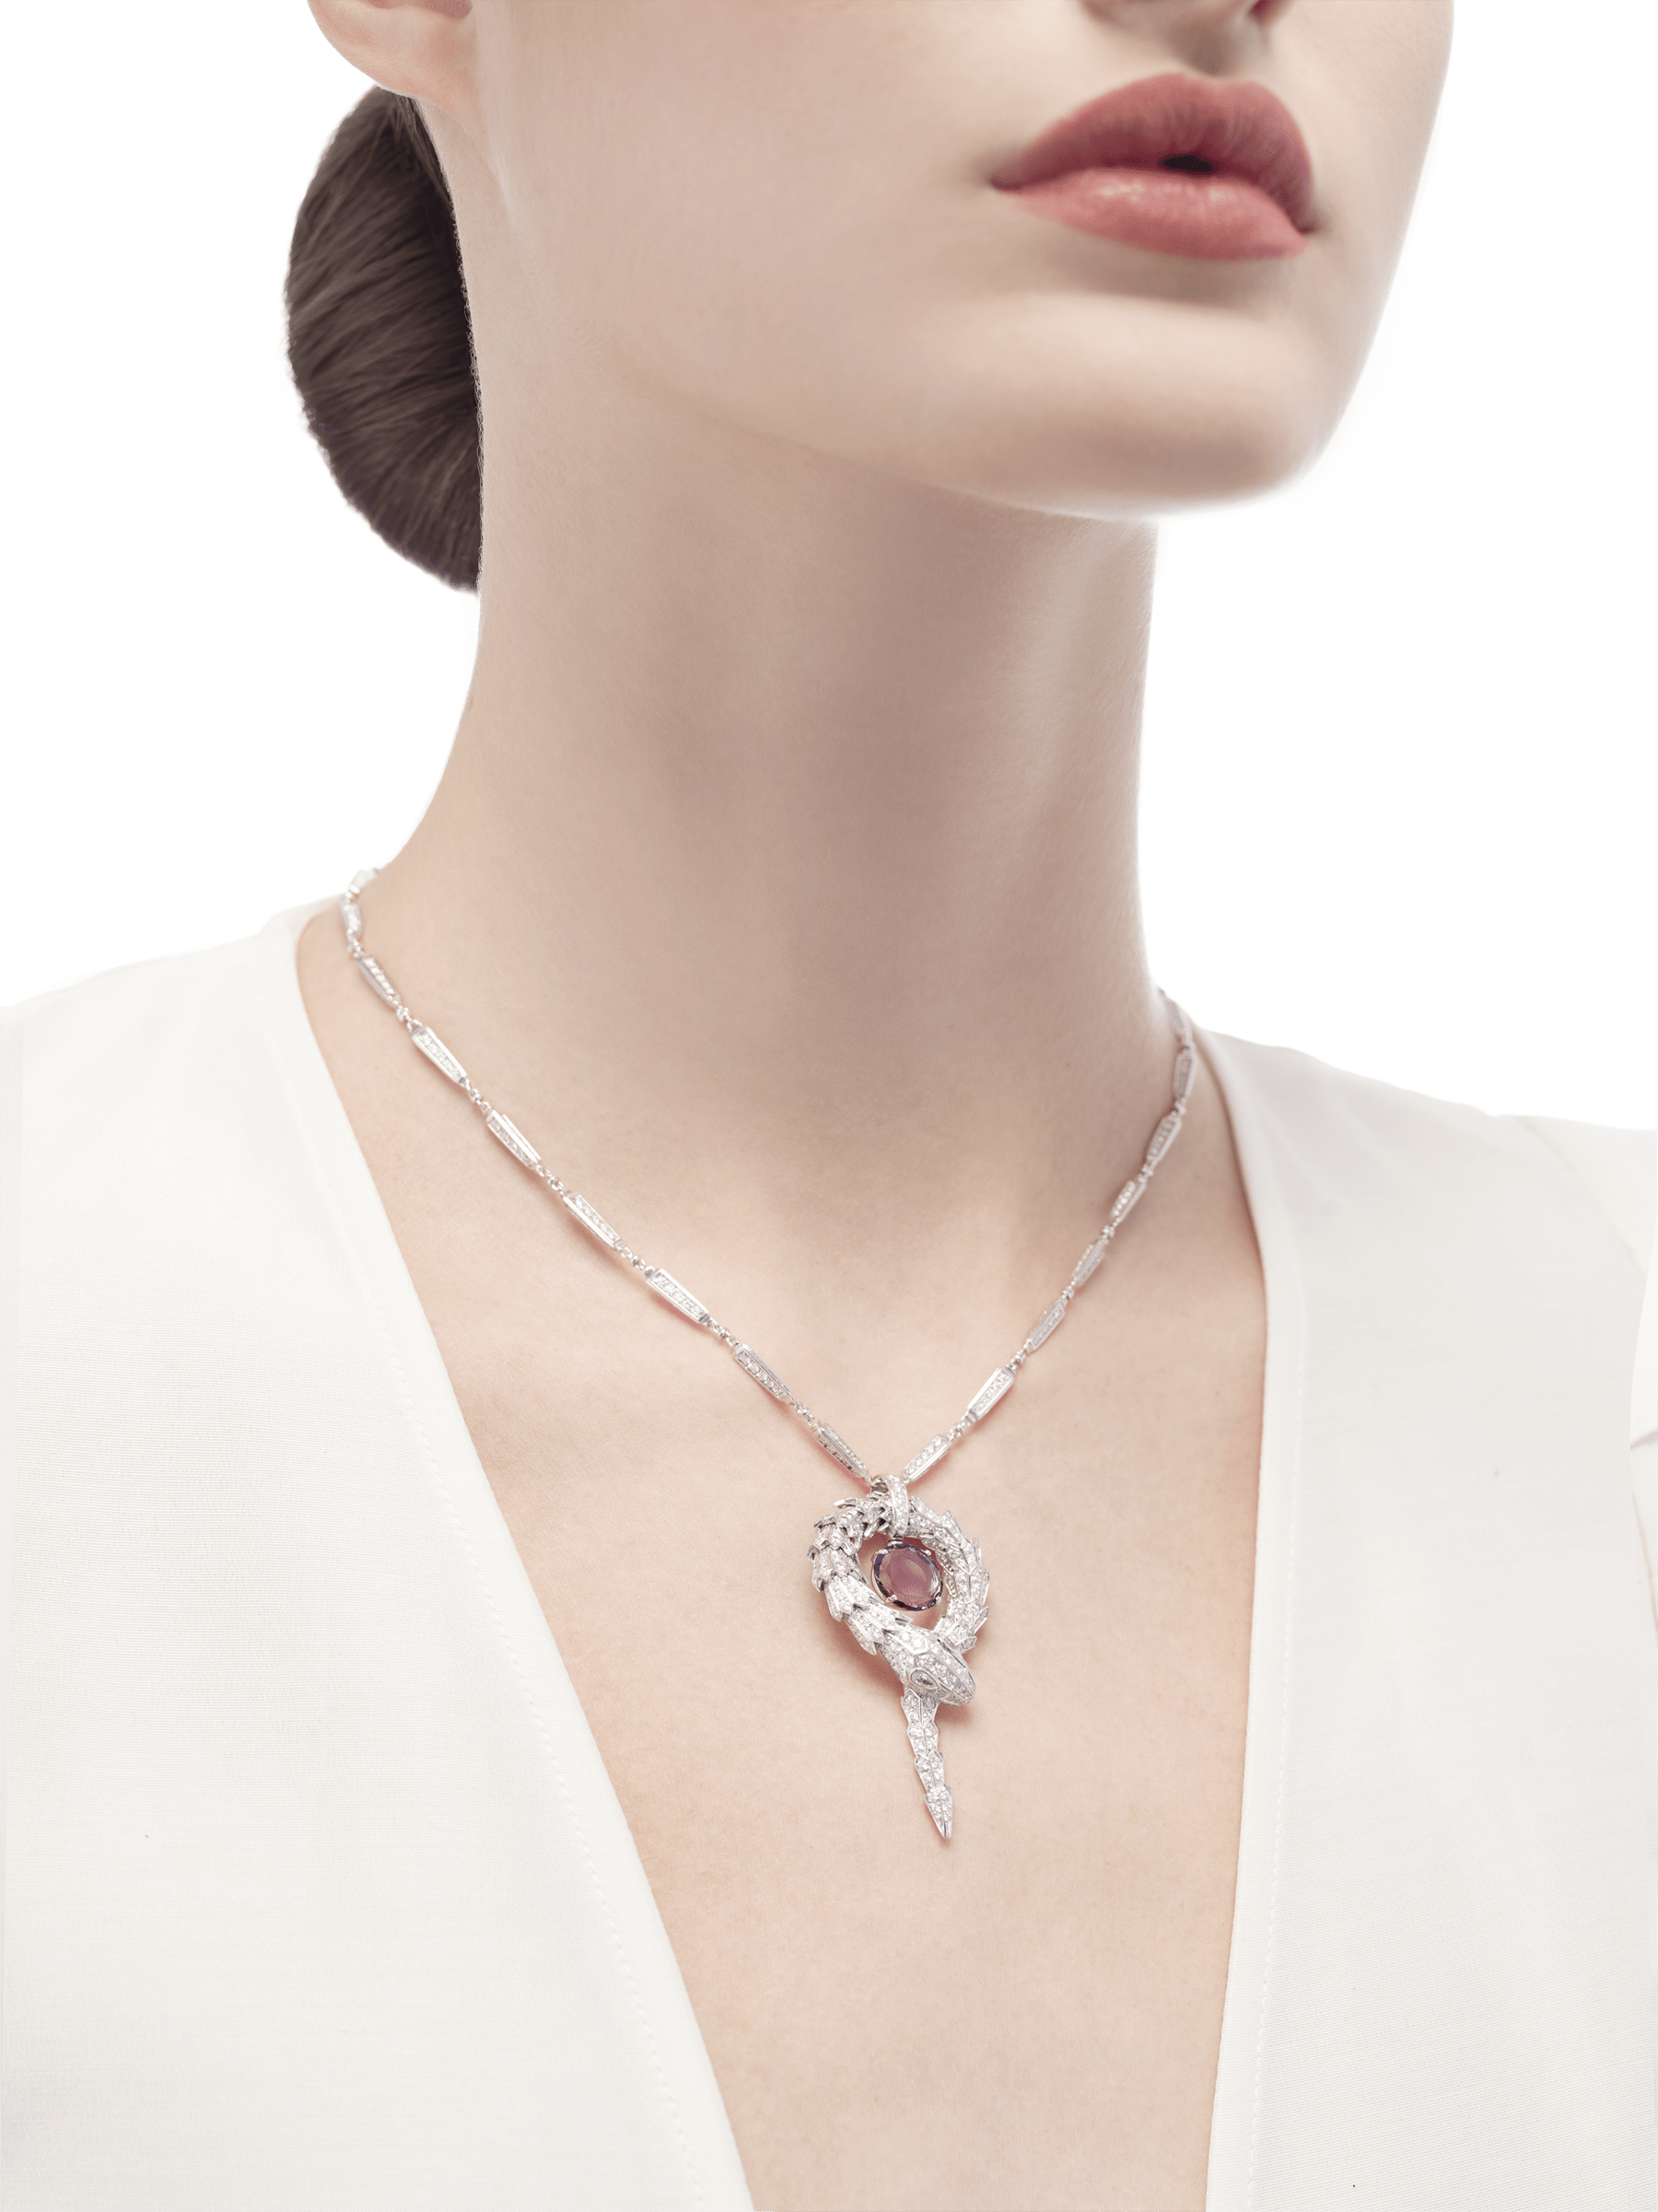 Serpenti small pendant in 18 kt white gold with amethyst and pavé diamonds. 354087 image 3